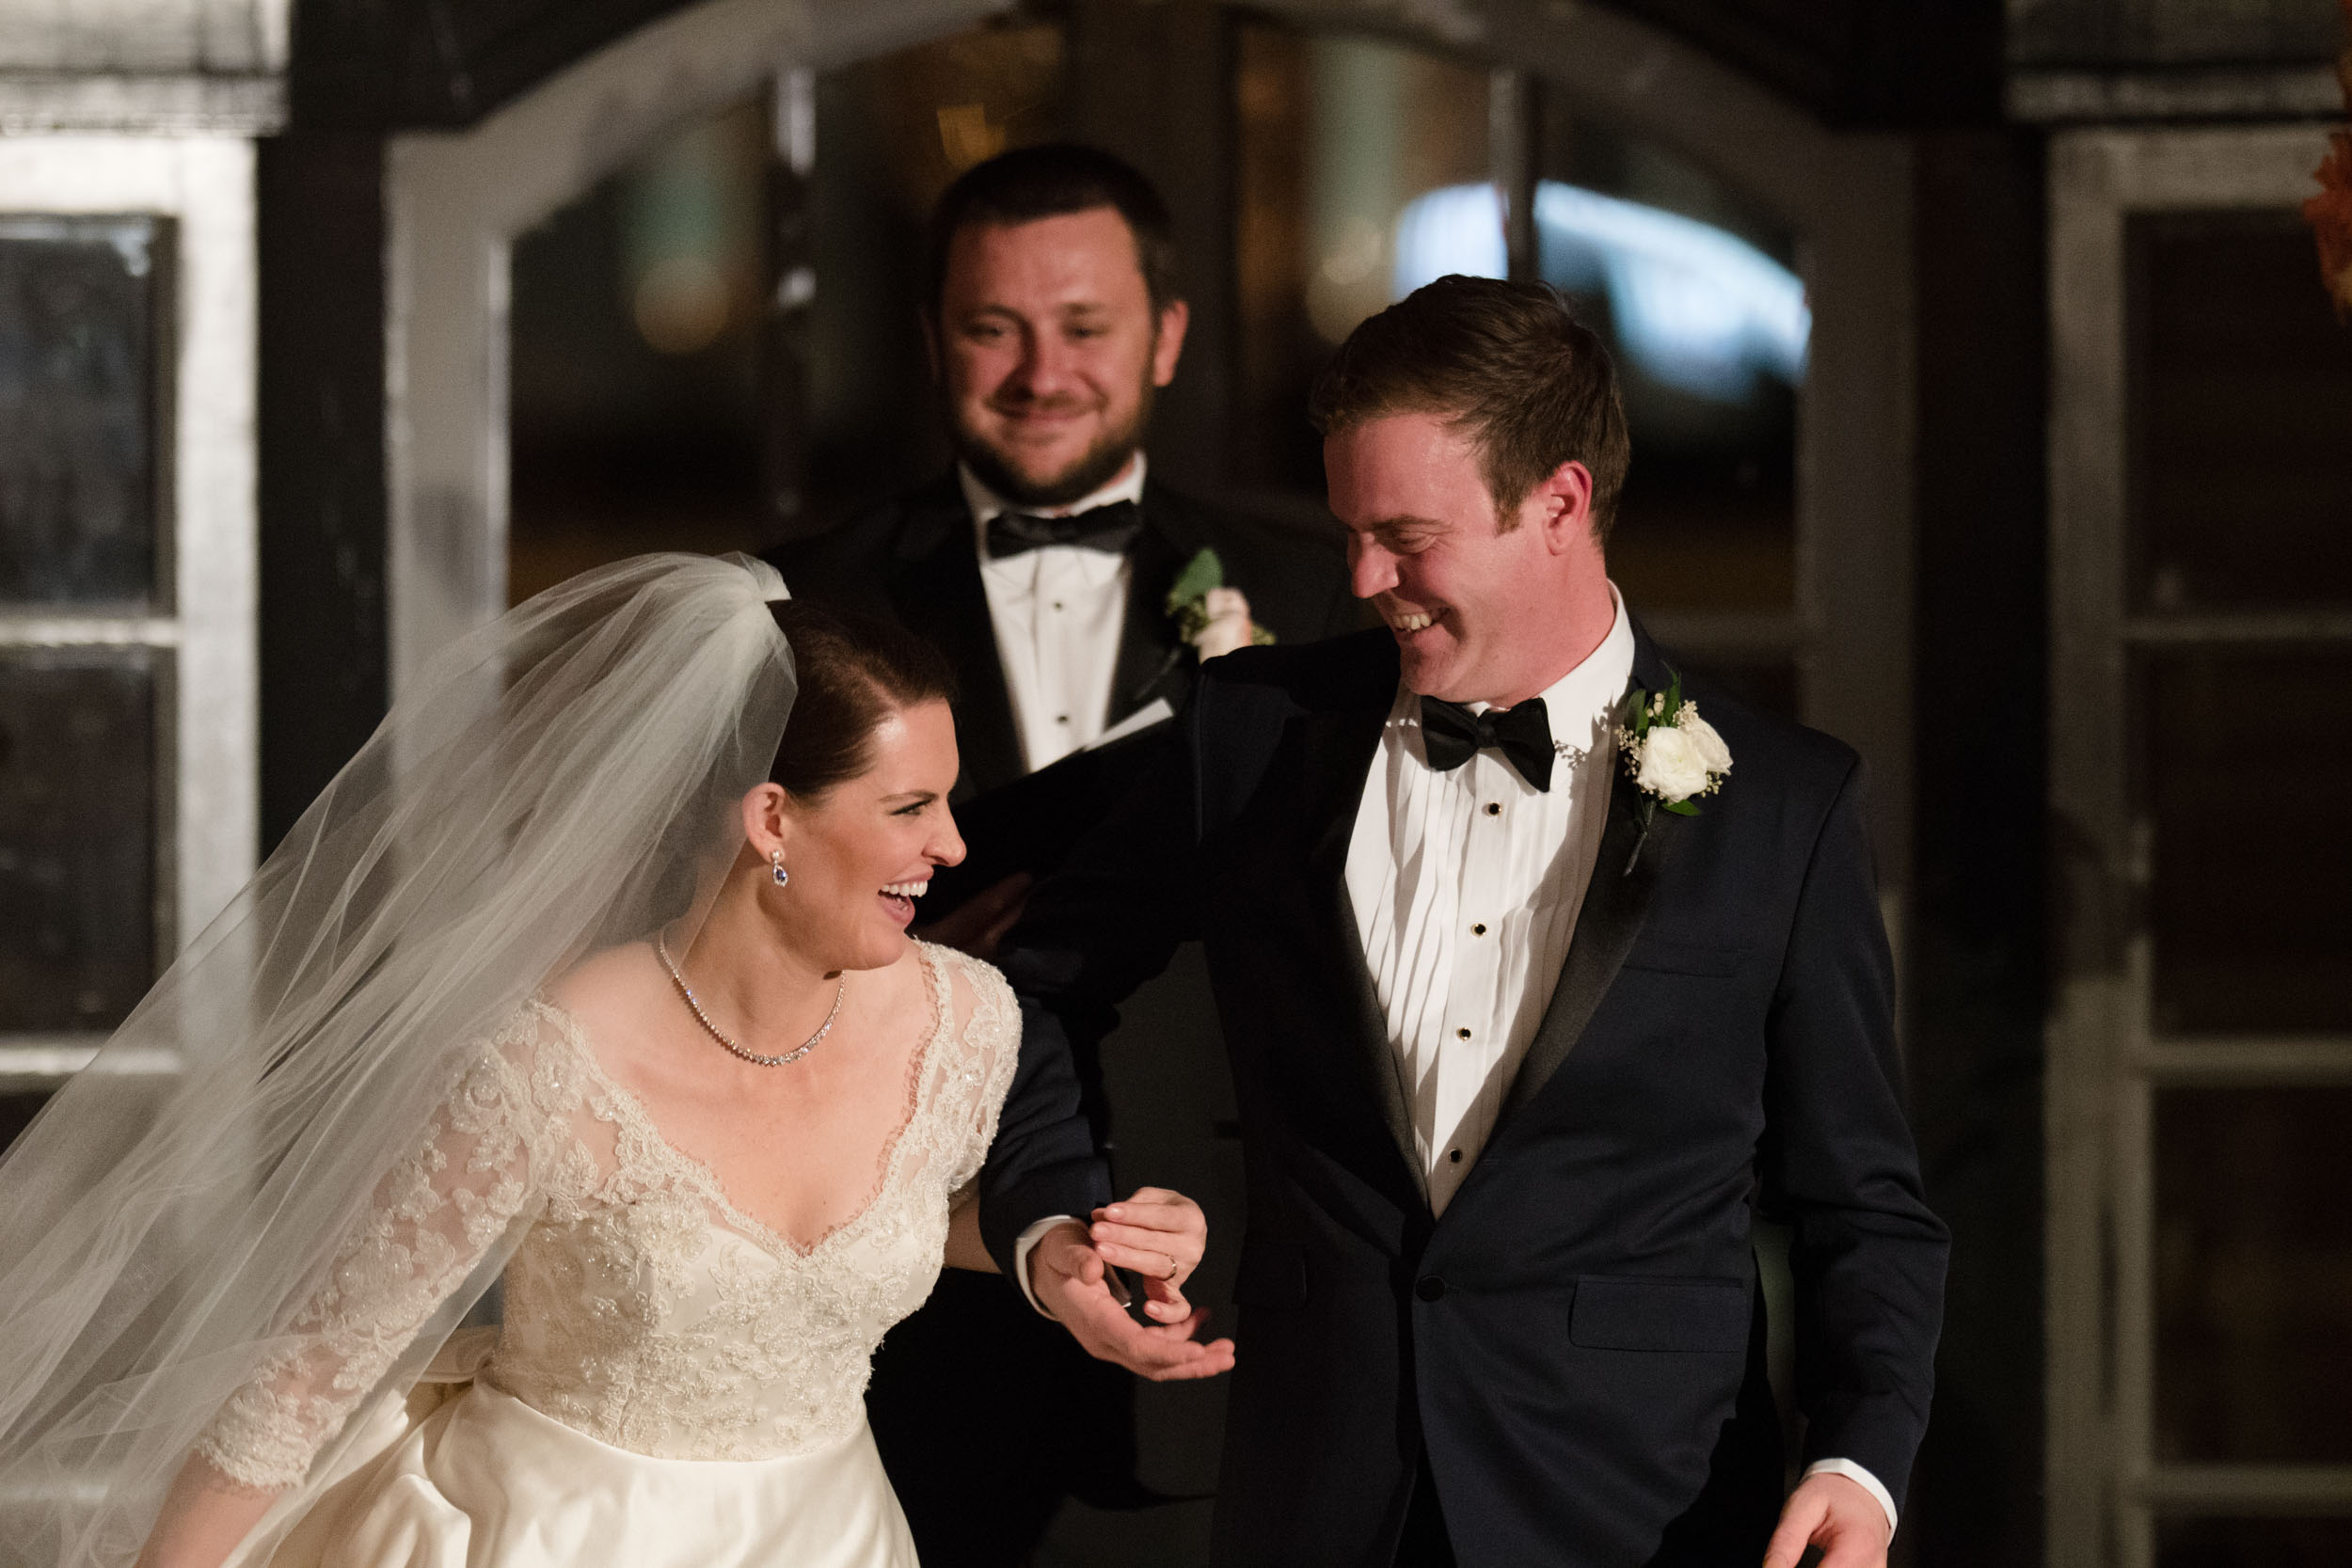 Bride and groom exit wedding ceremony in the Madison Ballrom at the Chicago Athletic Association Hotel